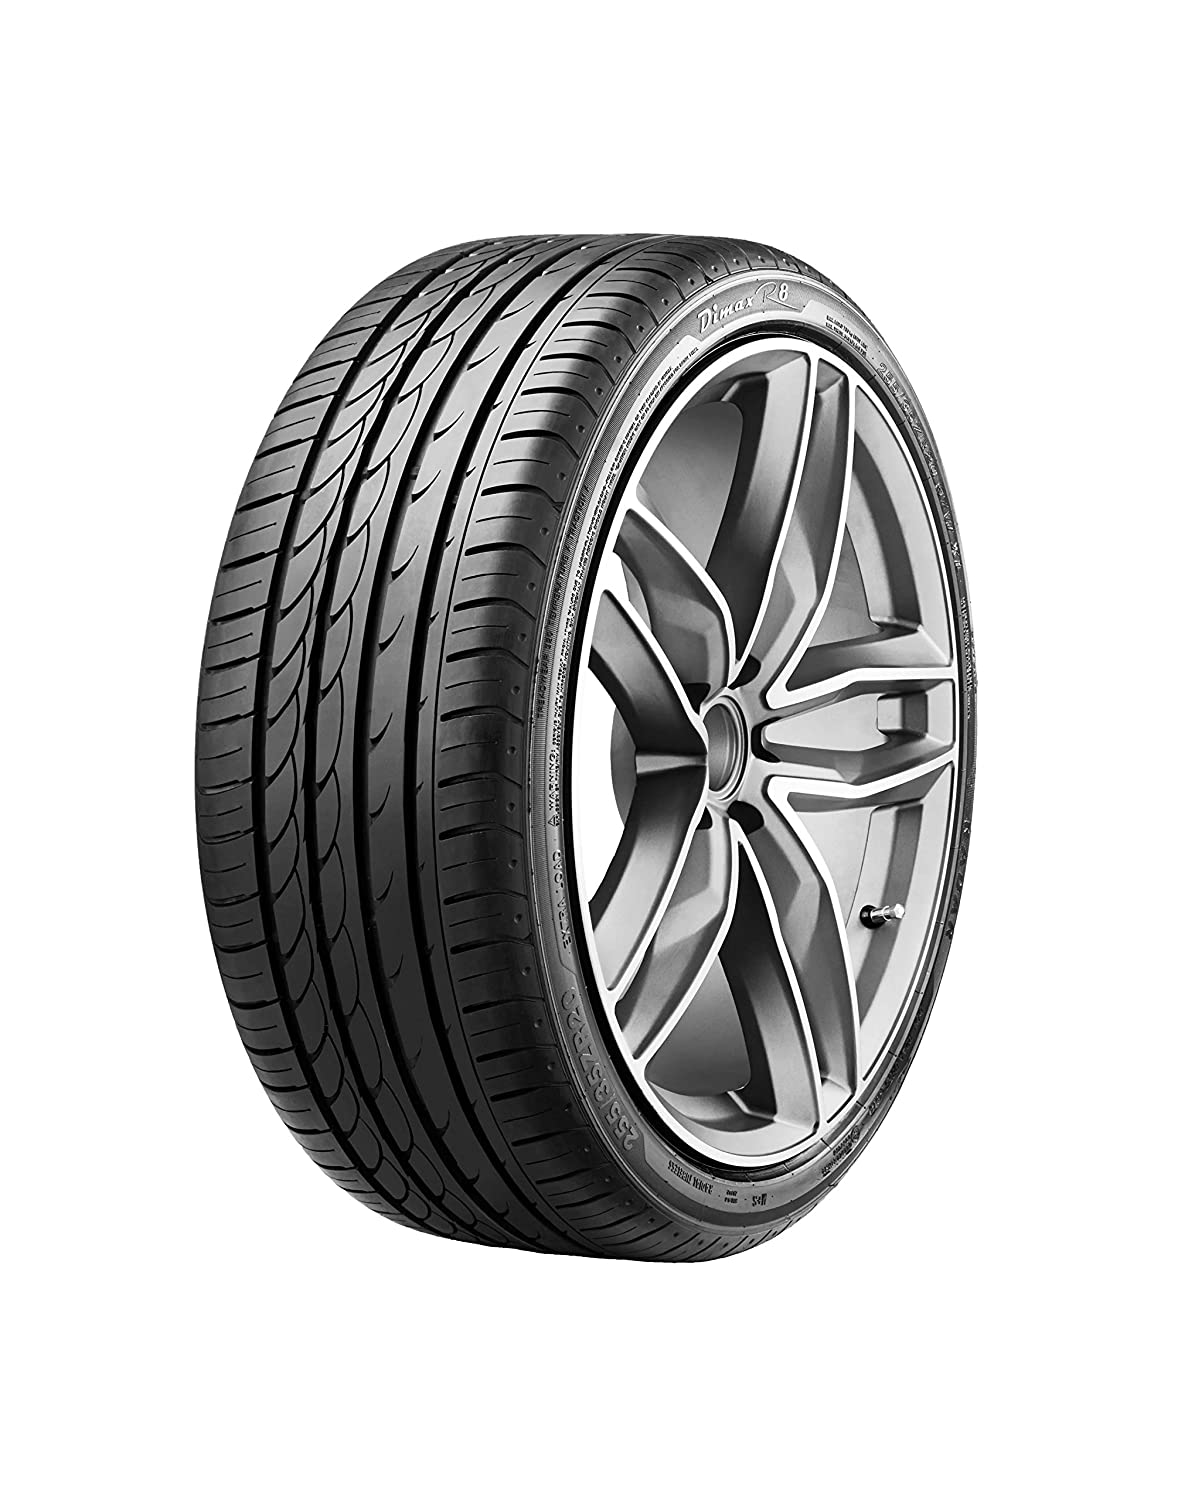 Radar Tires Dimax R8 Performance Radial Tire - 205/45ZR17 88Y Omni United DSC0582